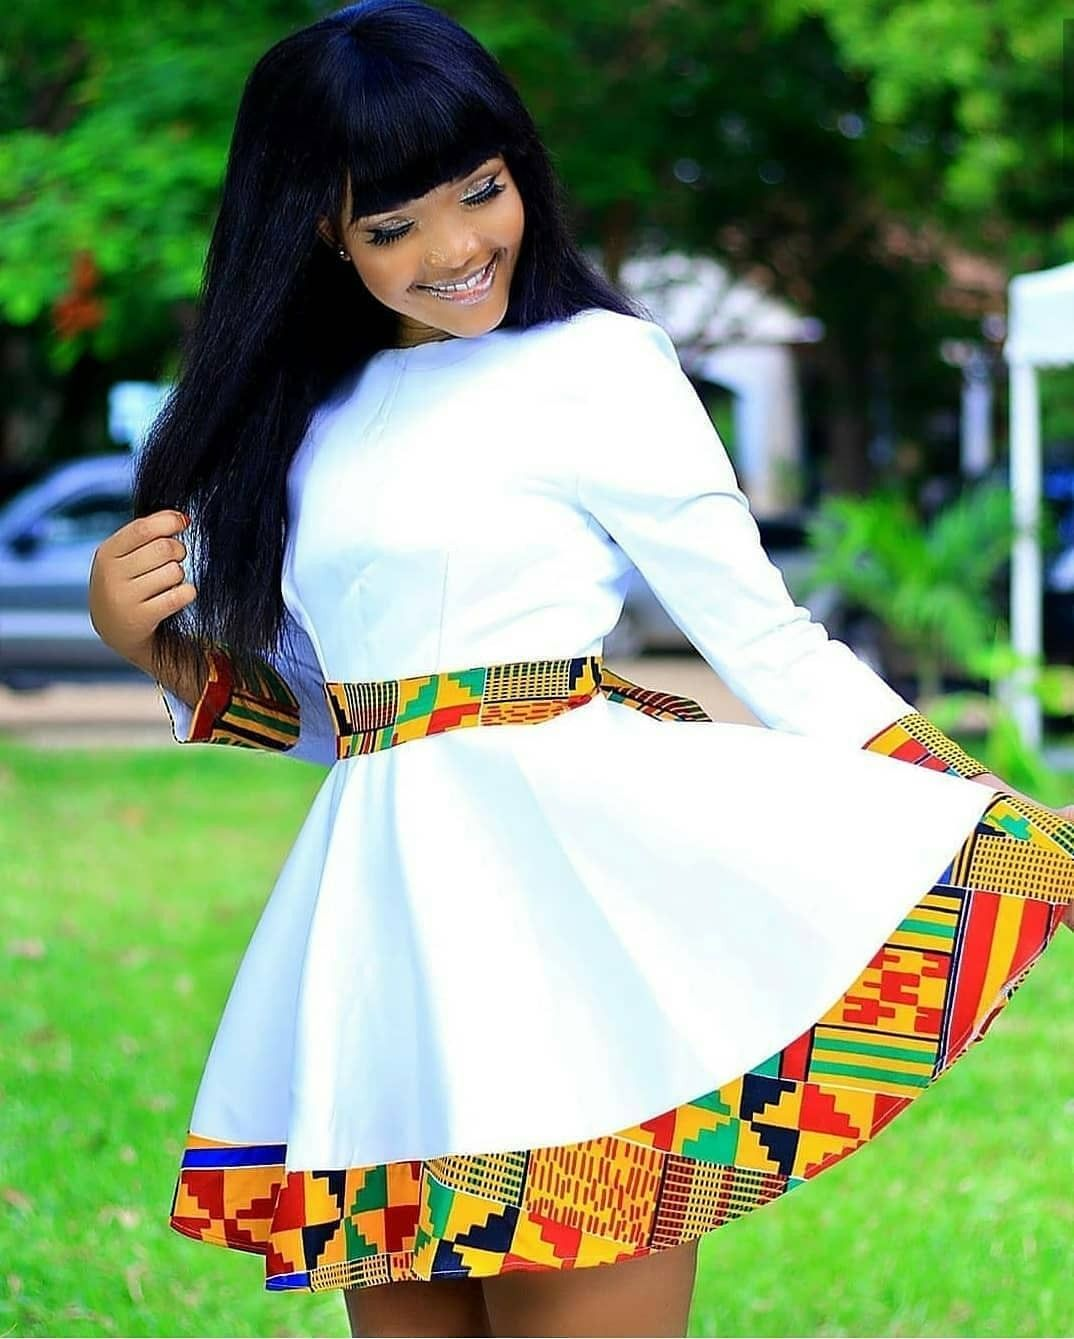 The Toghu Or Atoghu Print Is To Cameroon What Dashiki Is To Ghana African Print Fashion Dresses African Fashion African Print Fashion